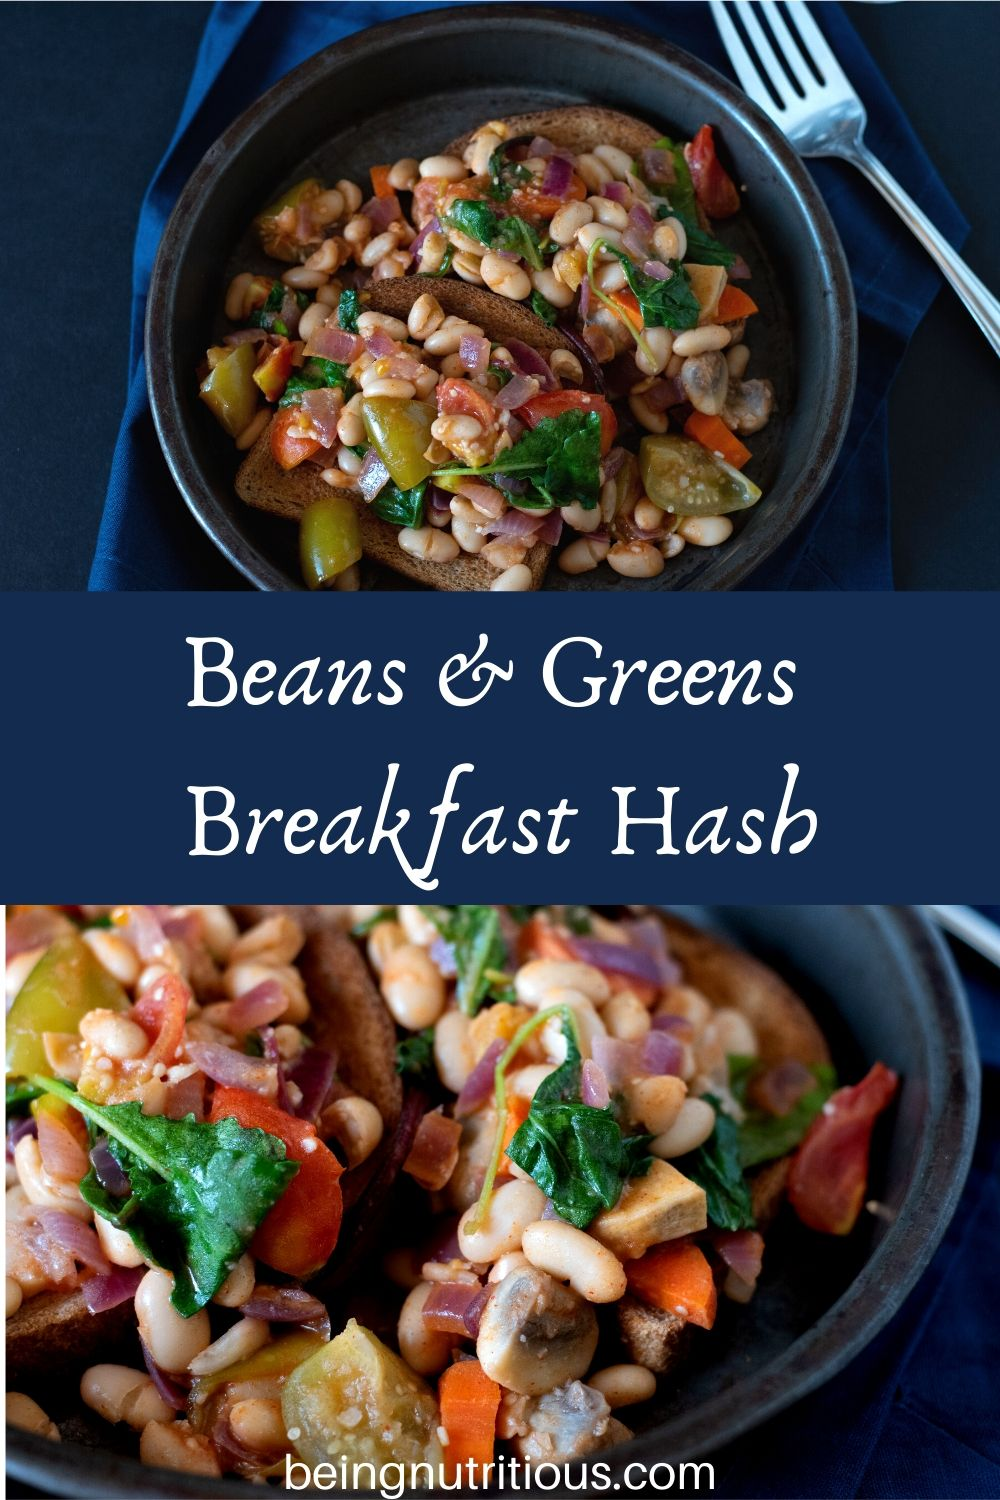 Beans and Greens Breakfast Hash on toast in a metal dish.